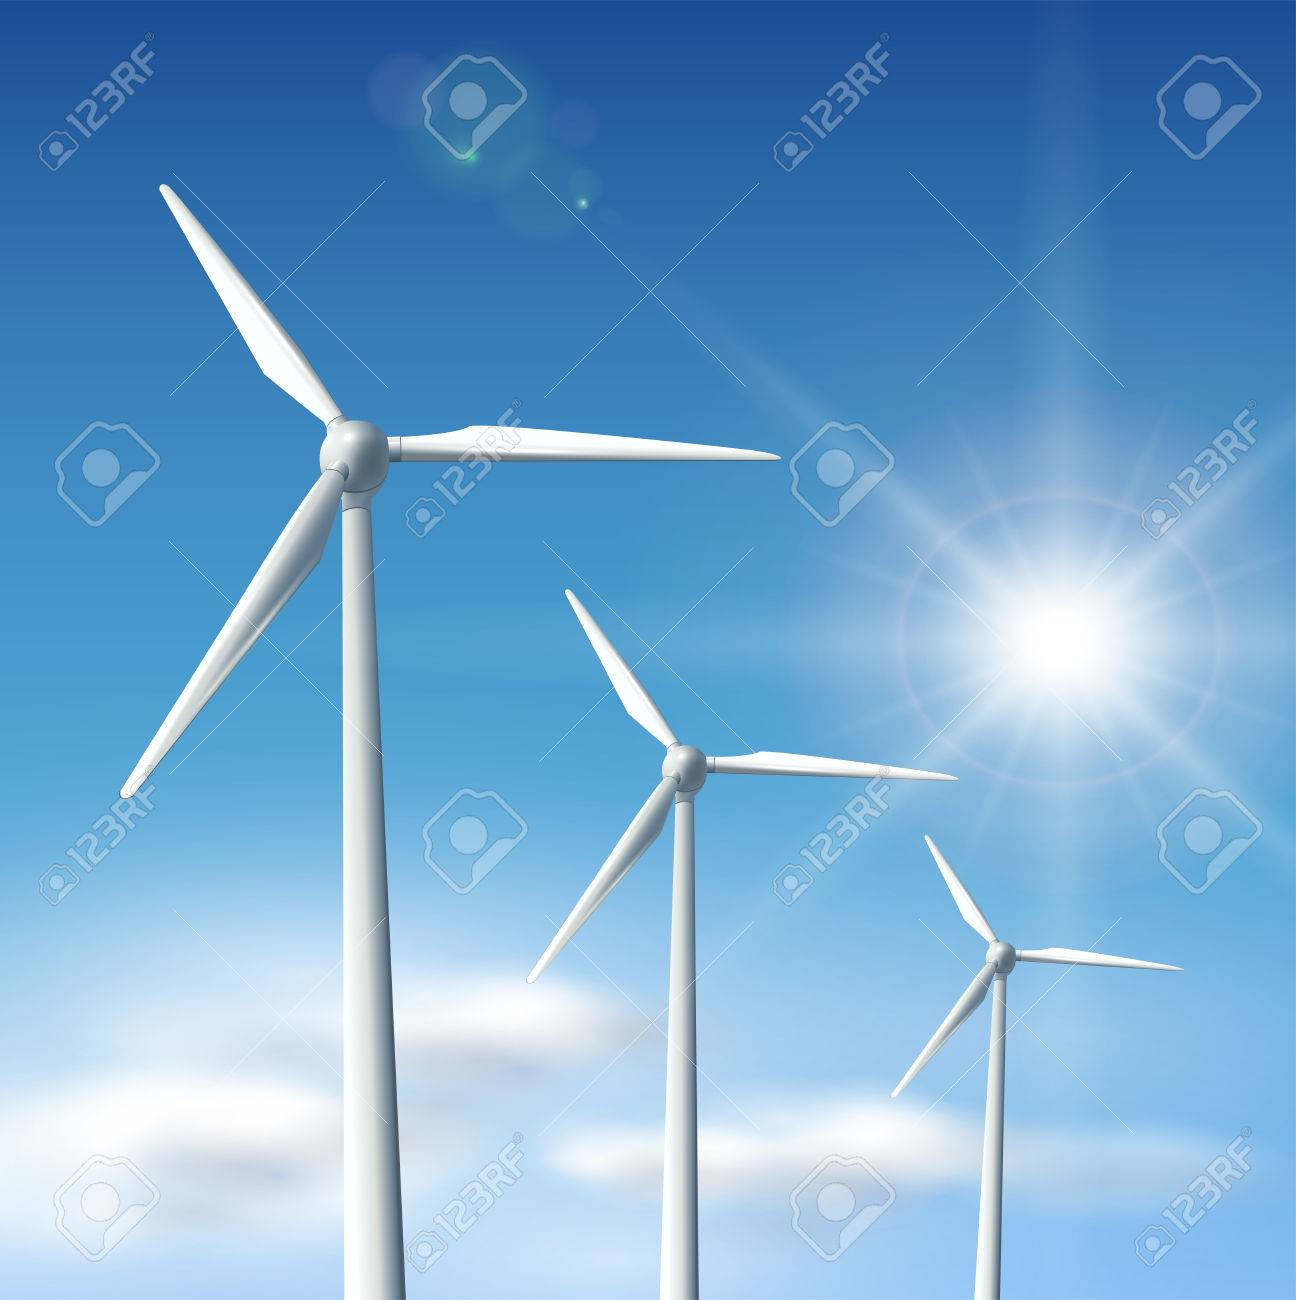 Wind turbines over blue sky with sun,   illustration. Stock Vector - 8290731